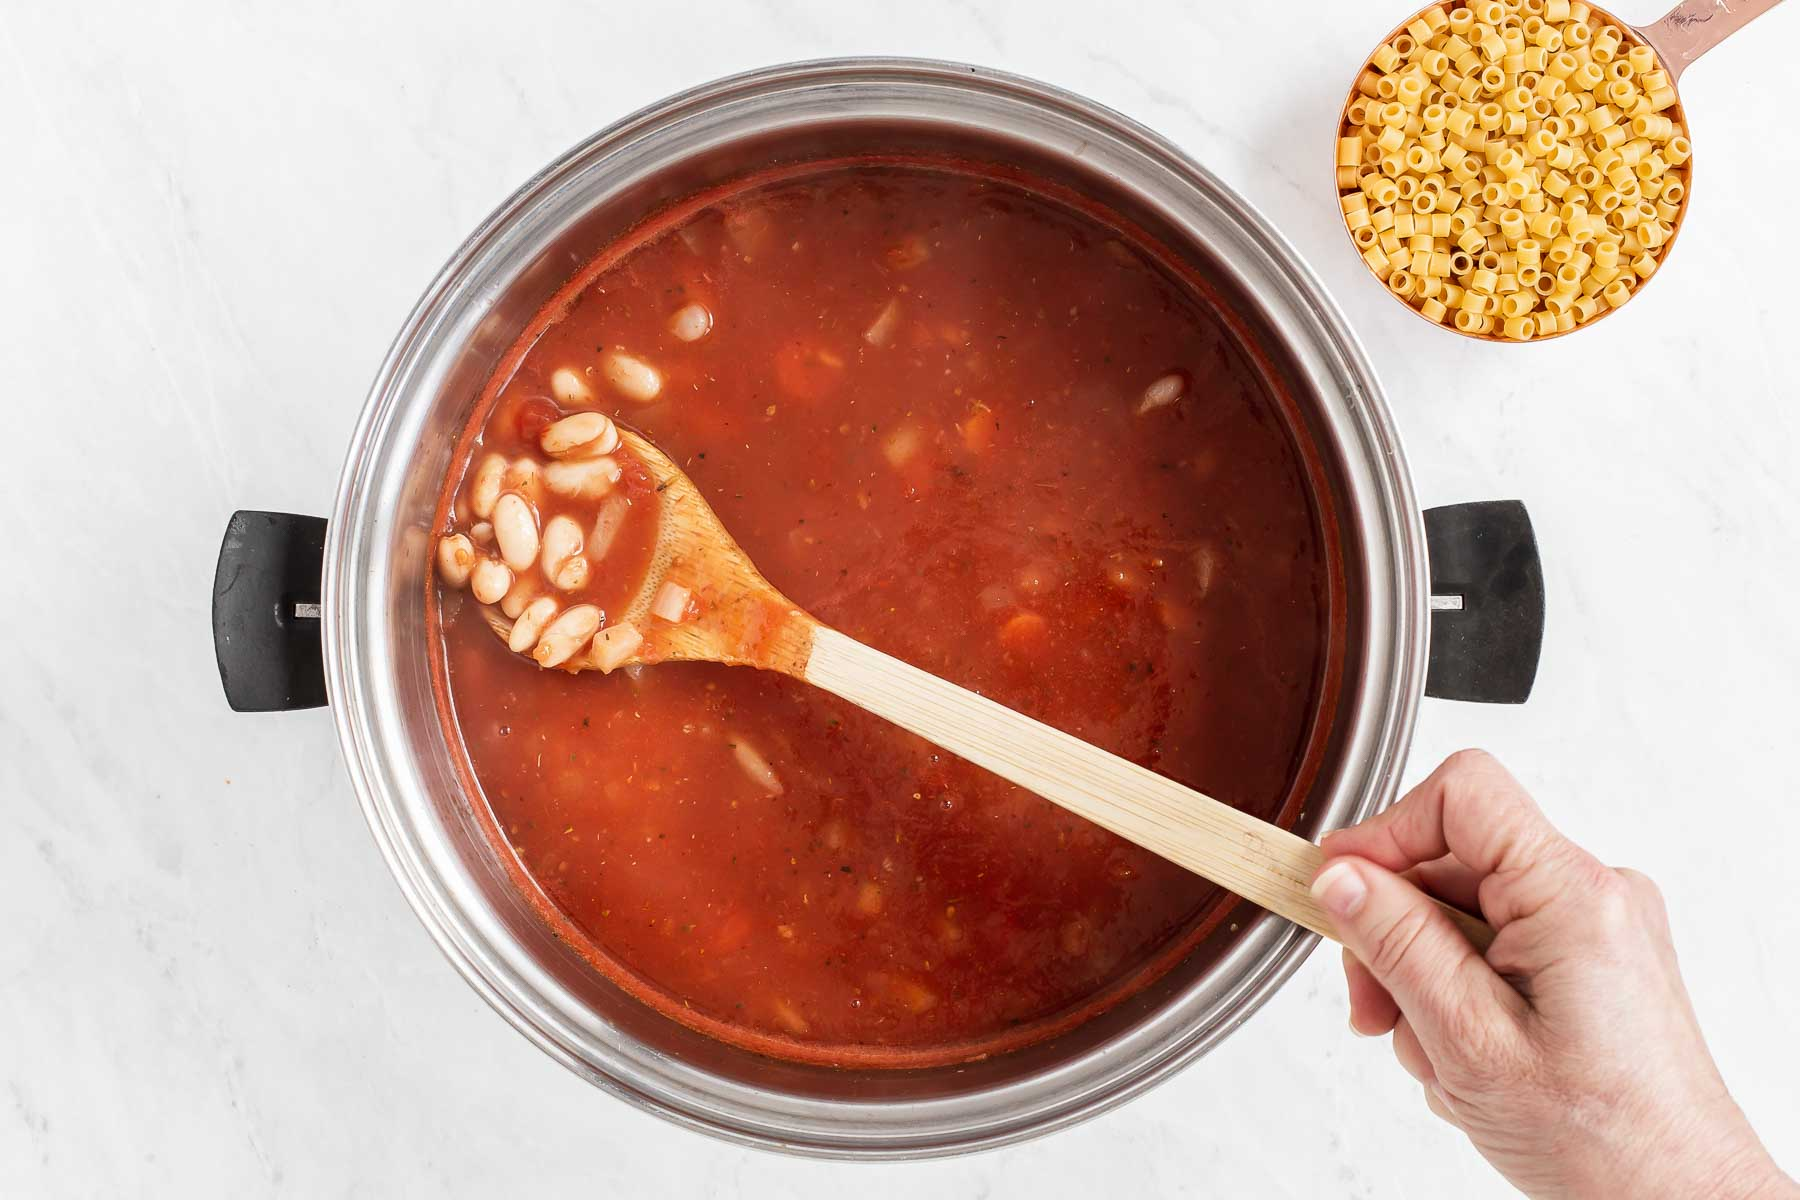 Red tomato soup simmer with spoonful of white beans.